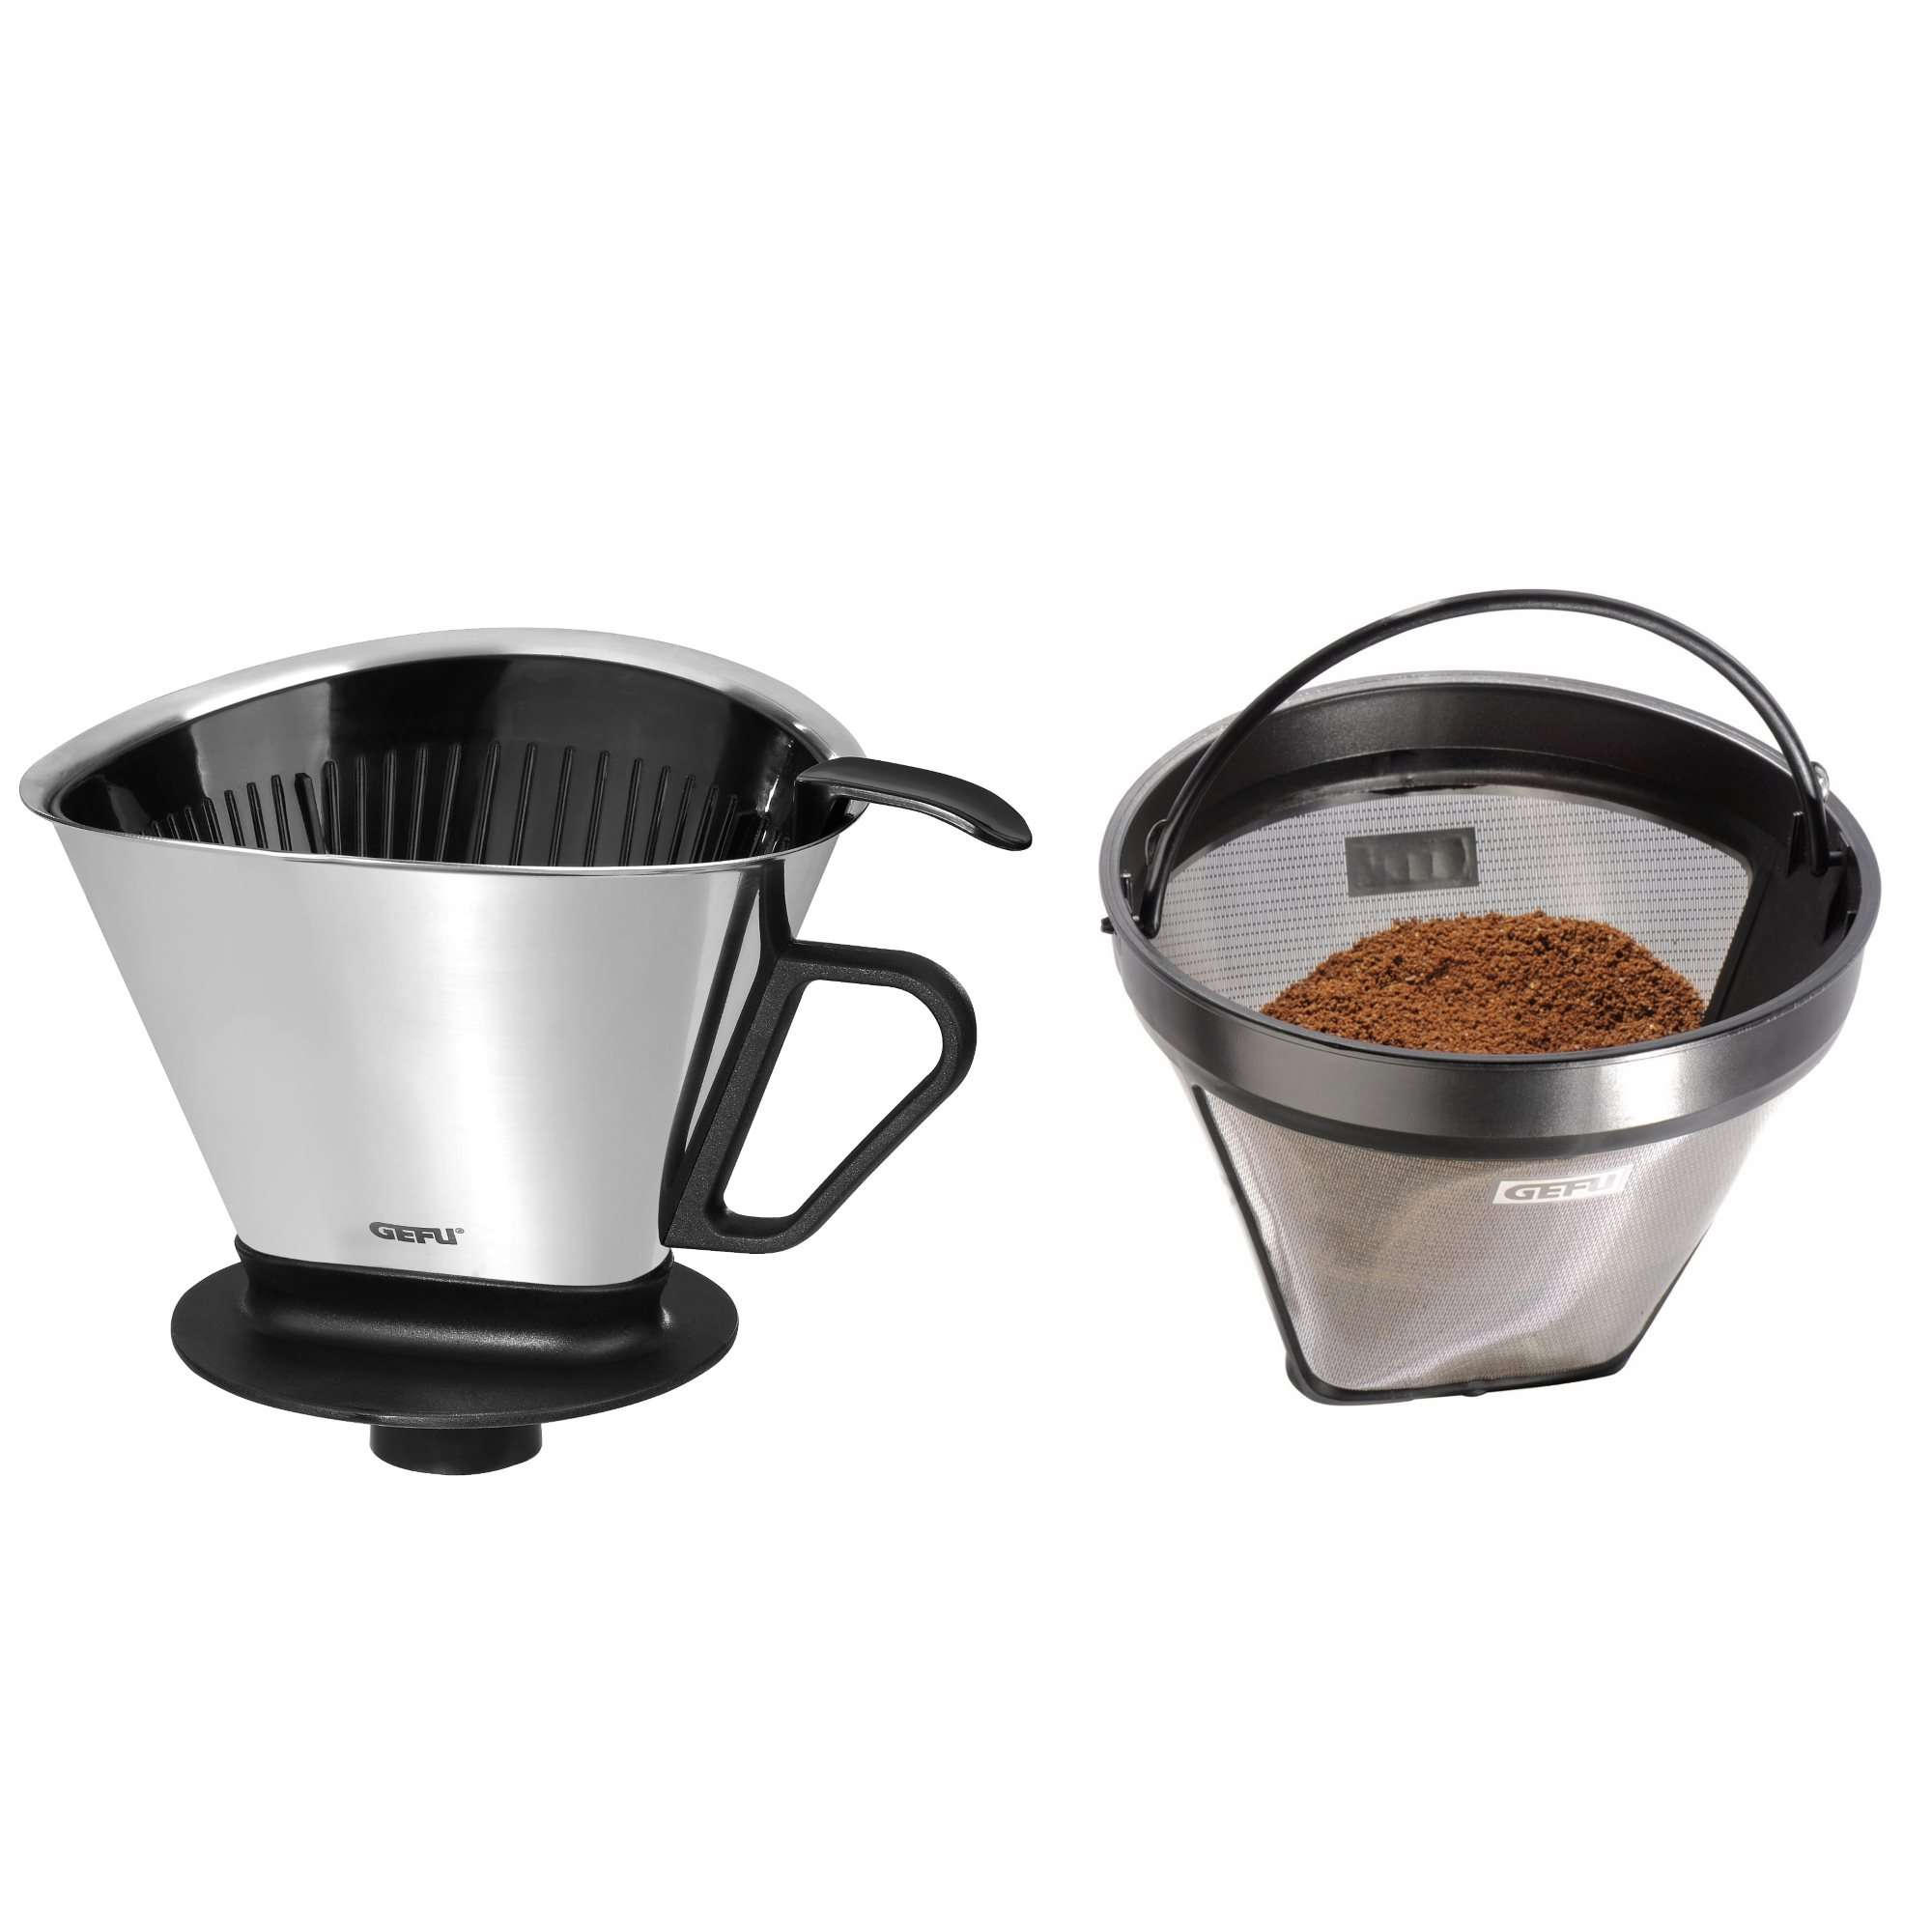 Kaffeefilter Amazon Gefu Angelo Coffee Filter With Arabica Permanent Filter In Set